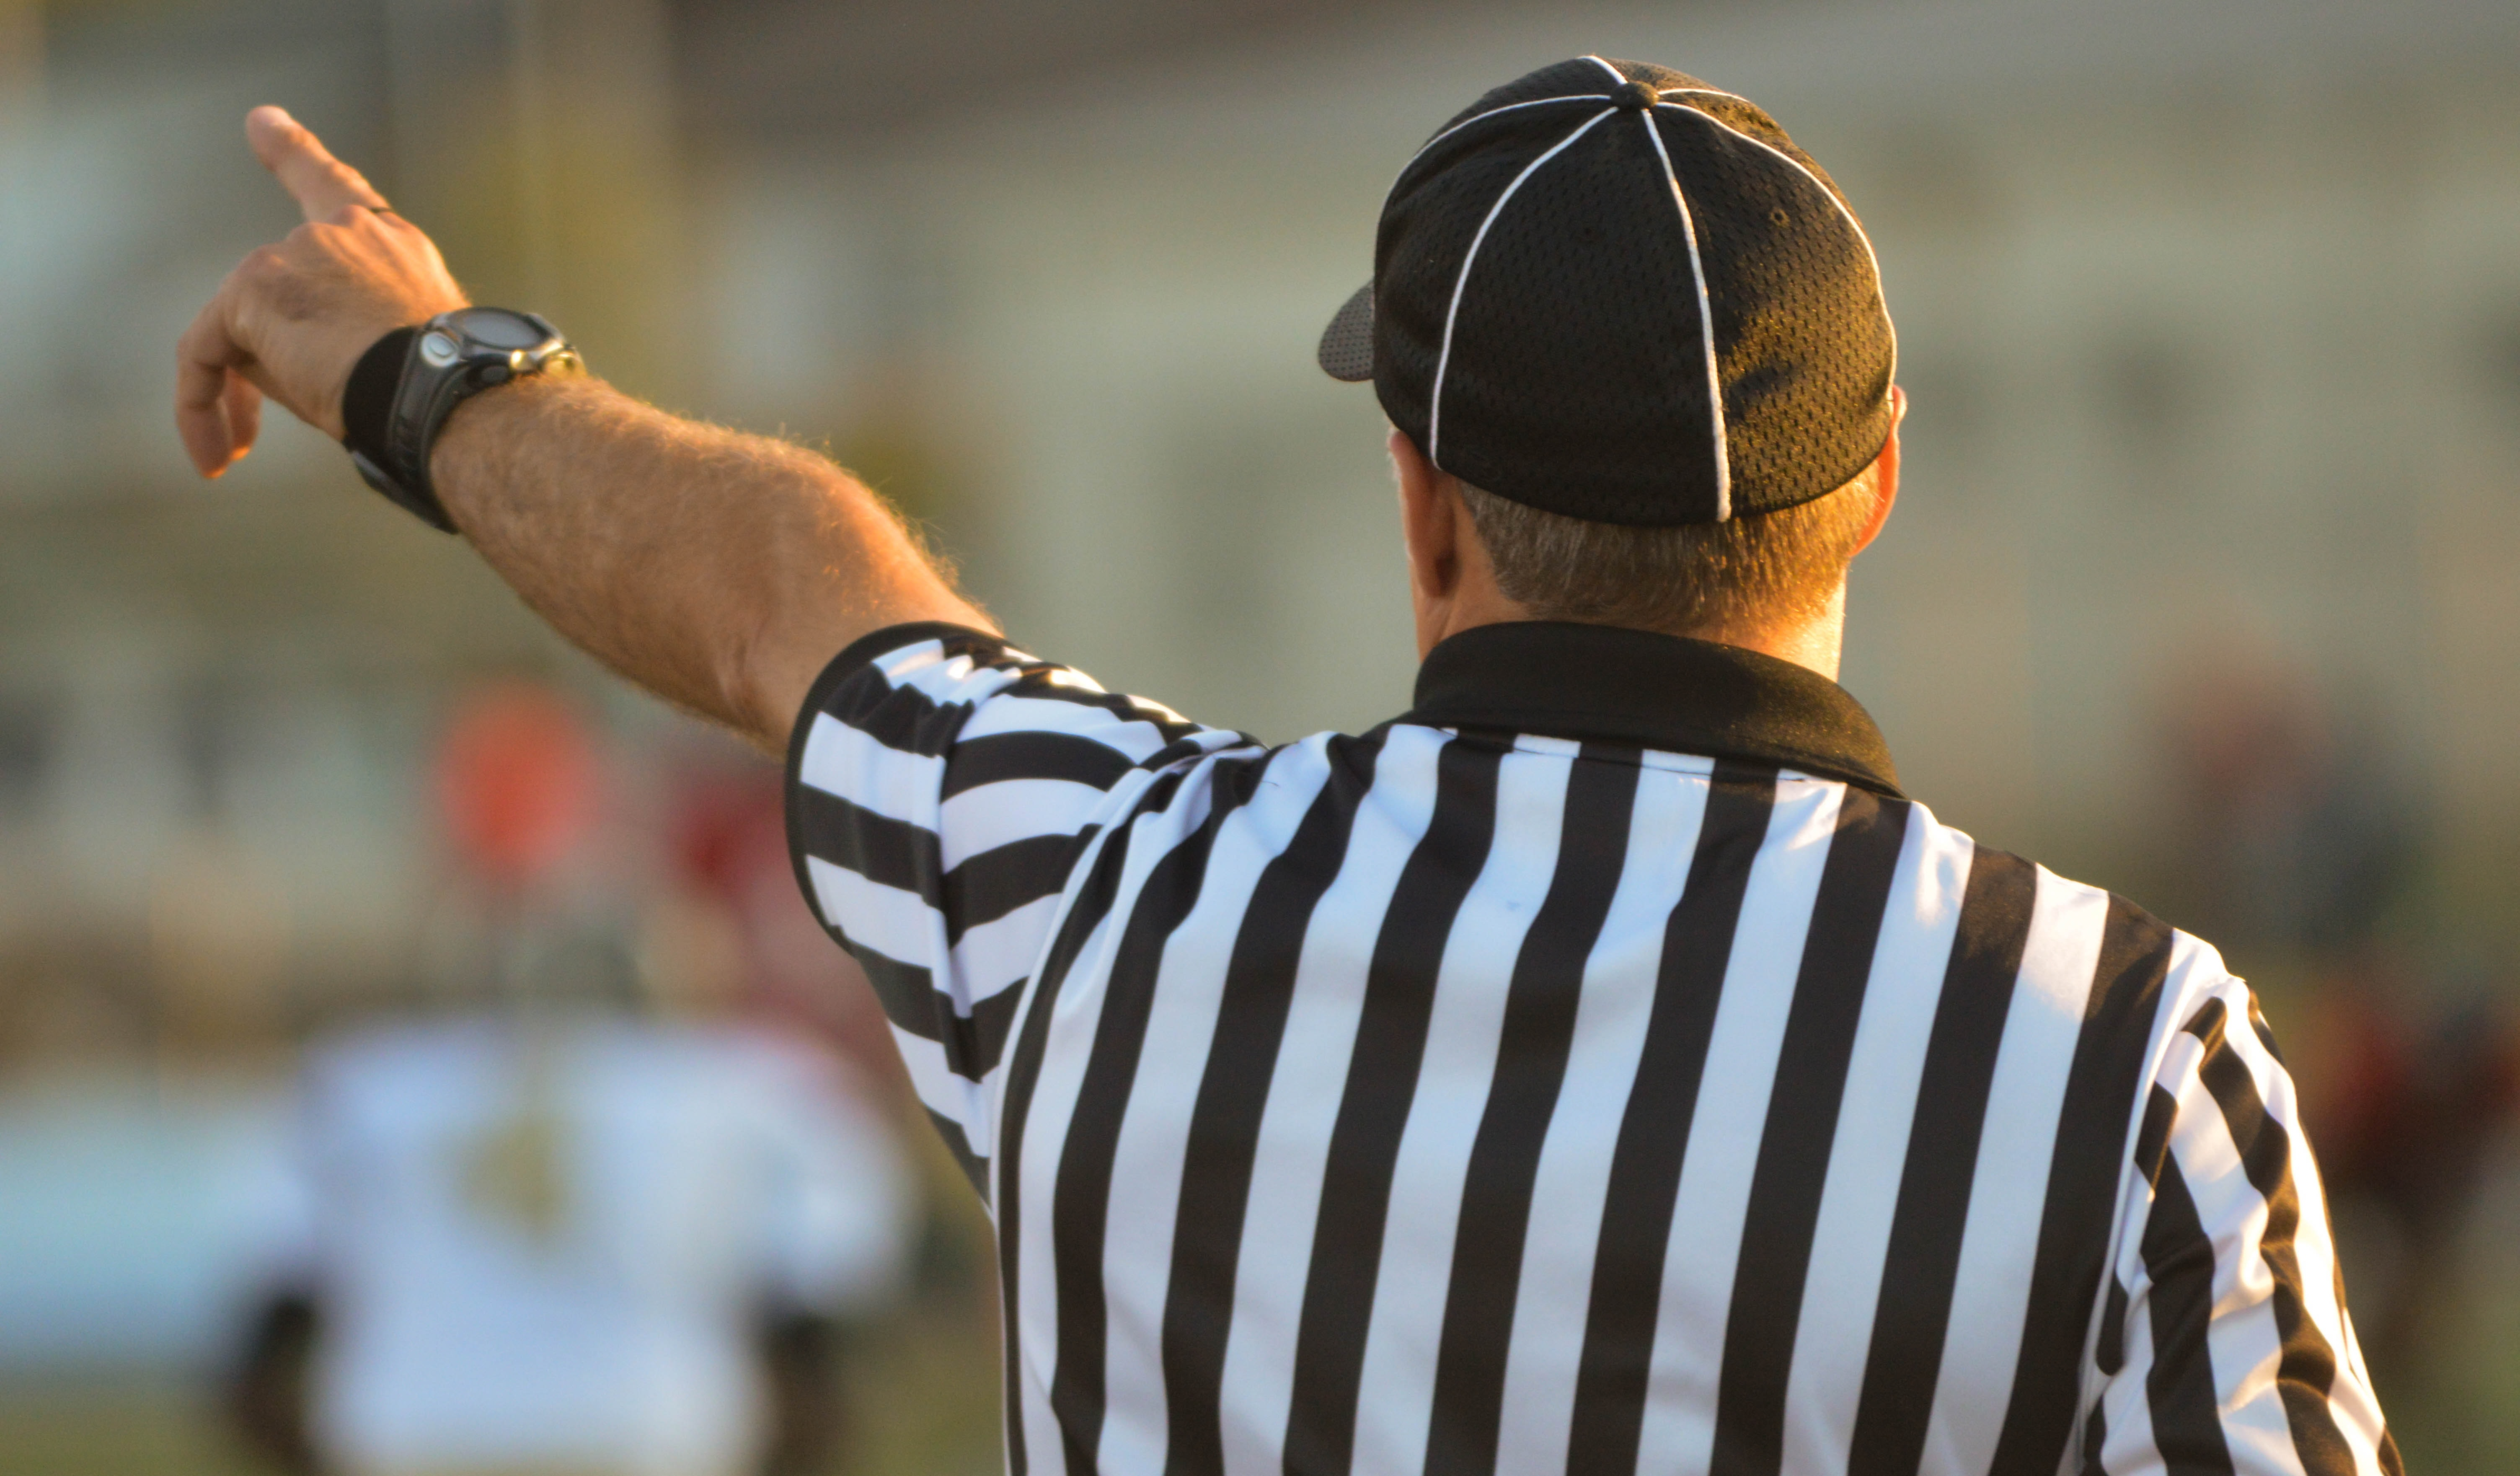 The macro view of a referee blowing a fowl in a baseball game